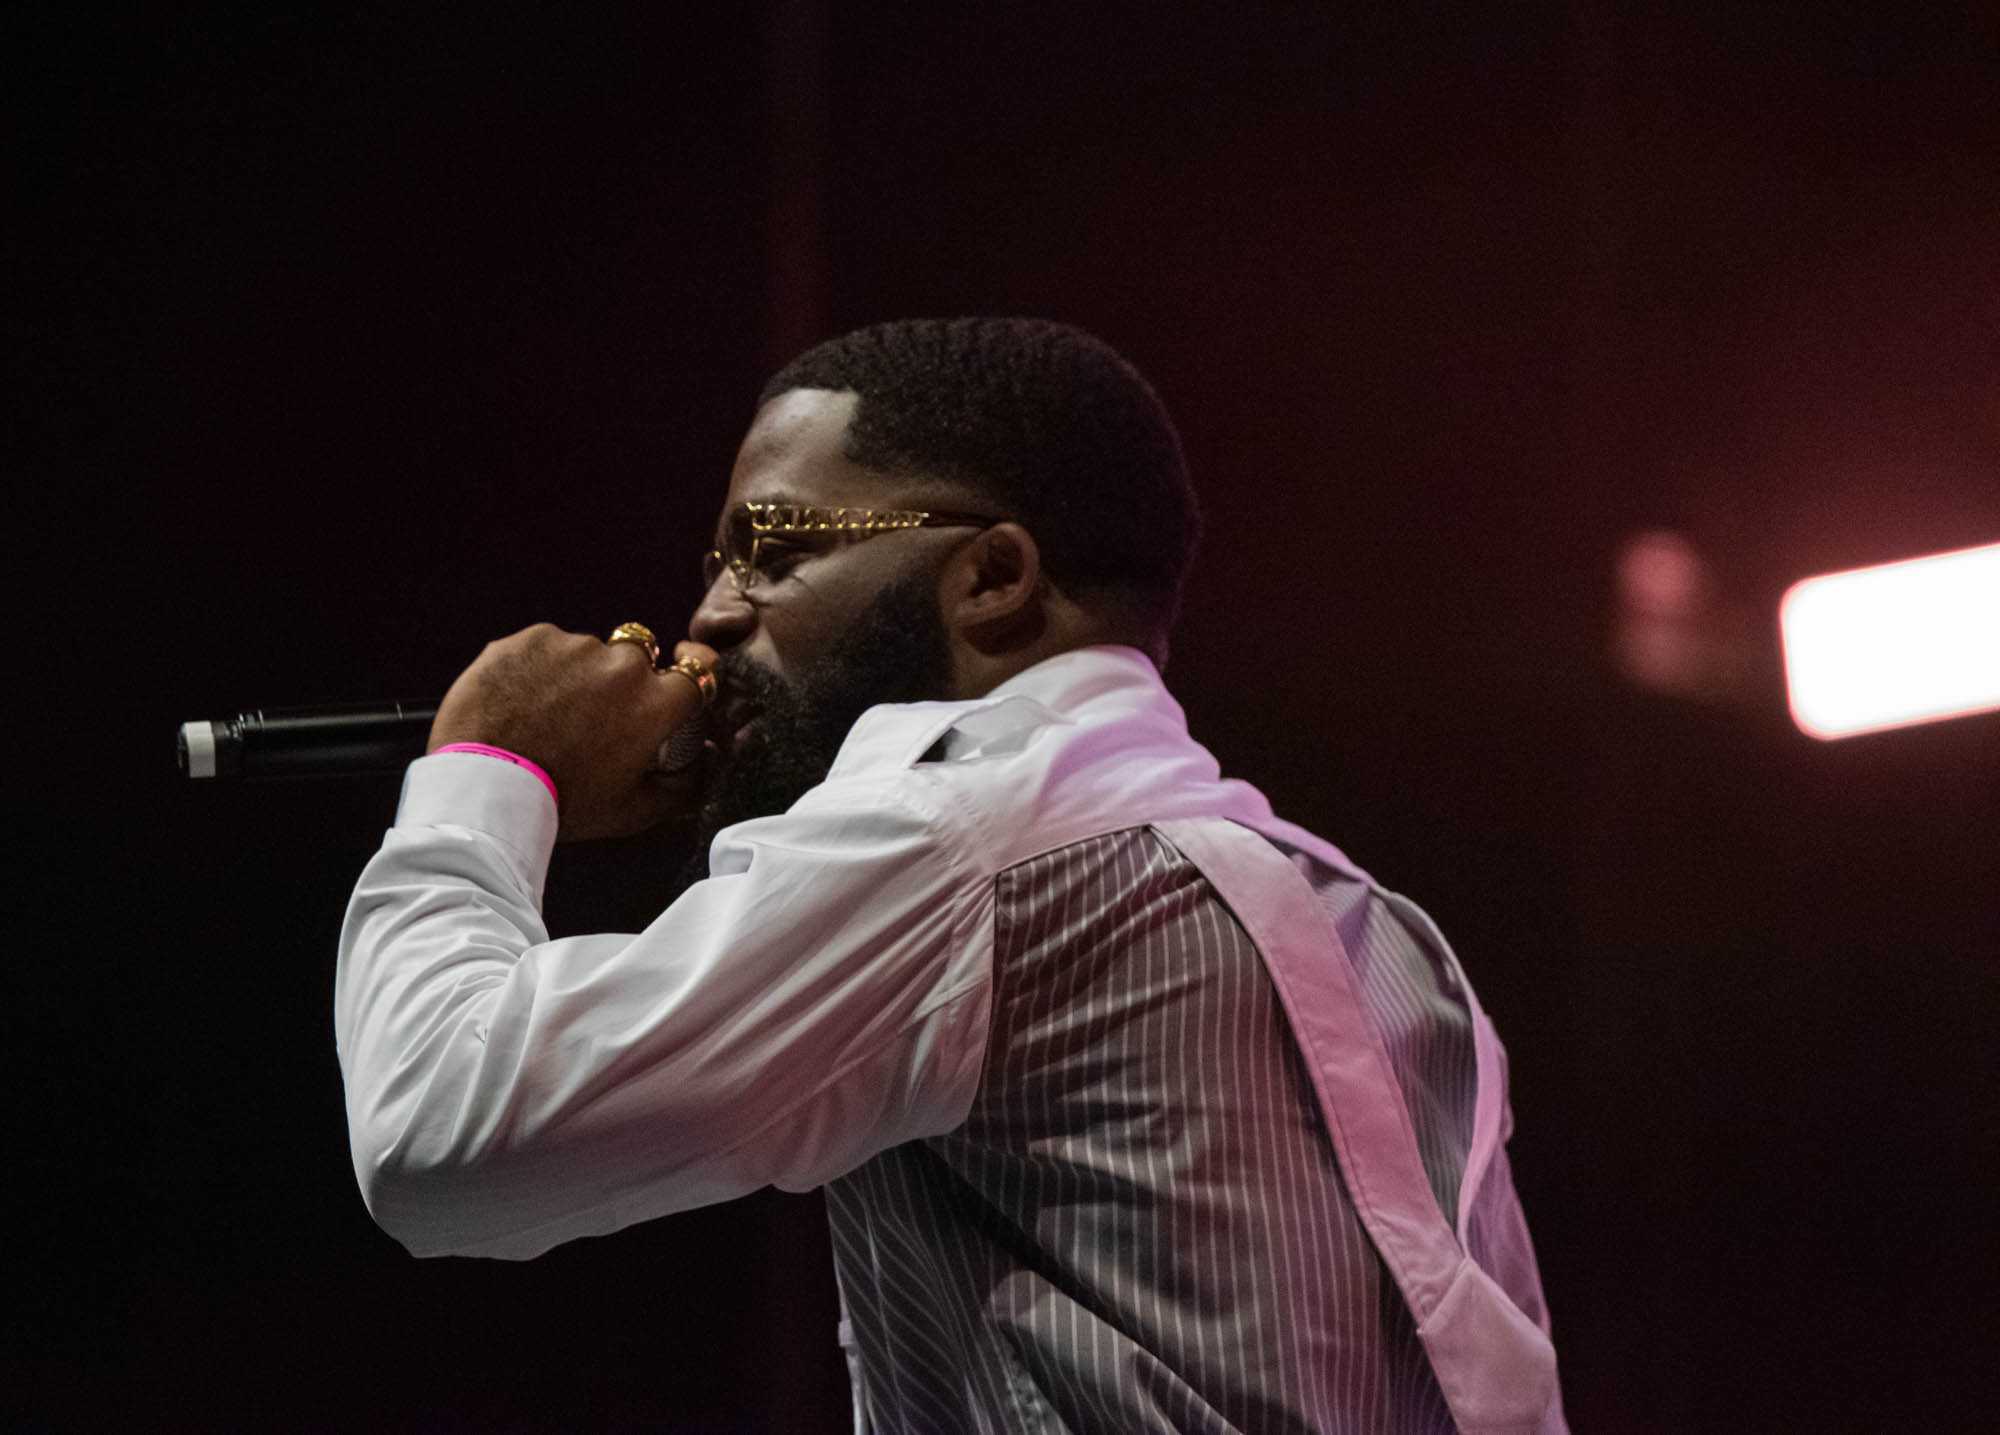 London, United Kingdom. 19th October 2019.  AfroB performing live at starboy fest at The 02 Arena. Photographed by Michael Tubes